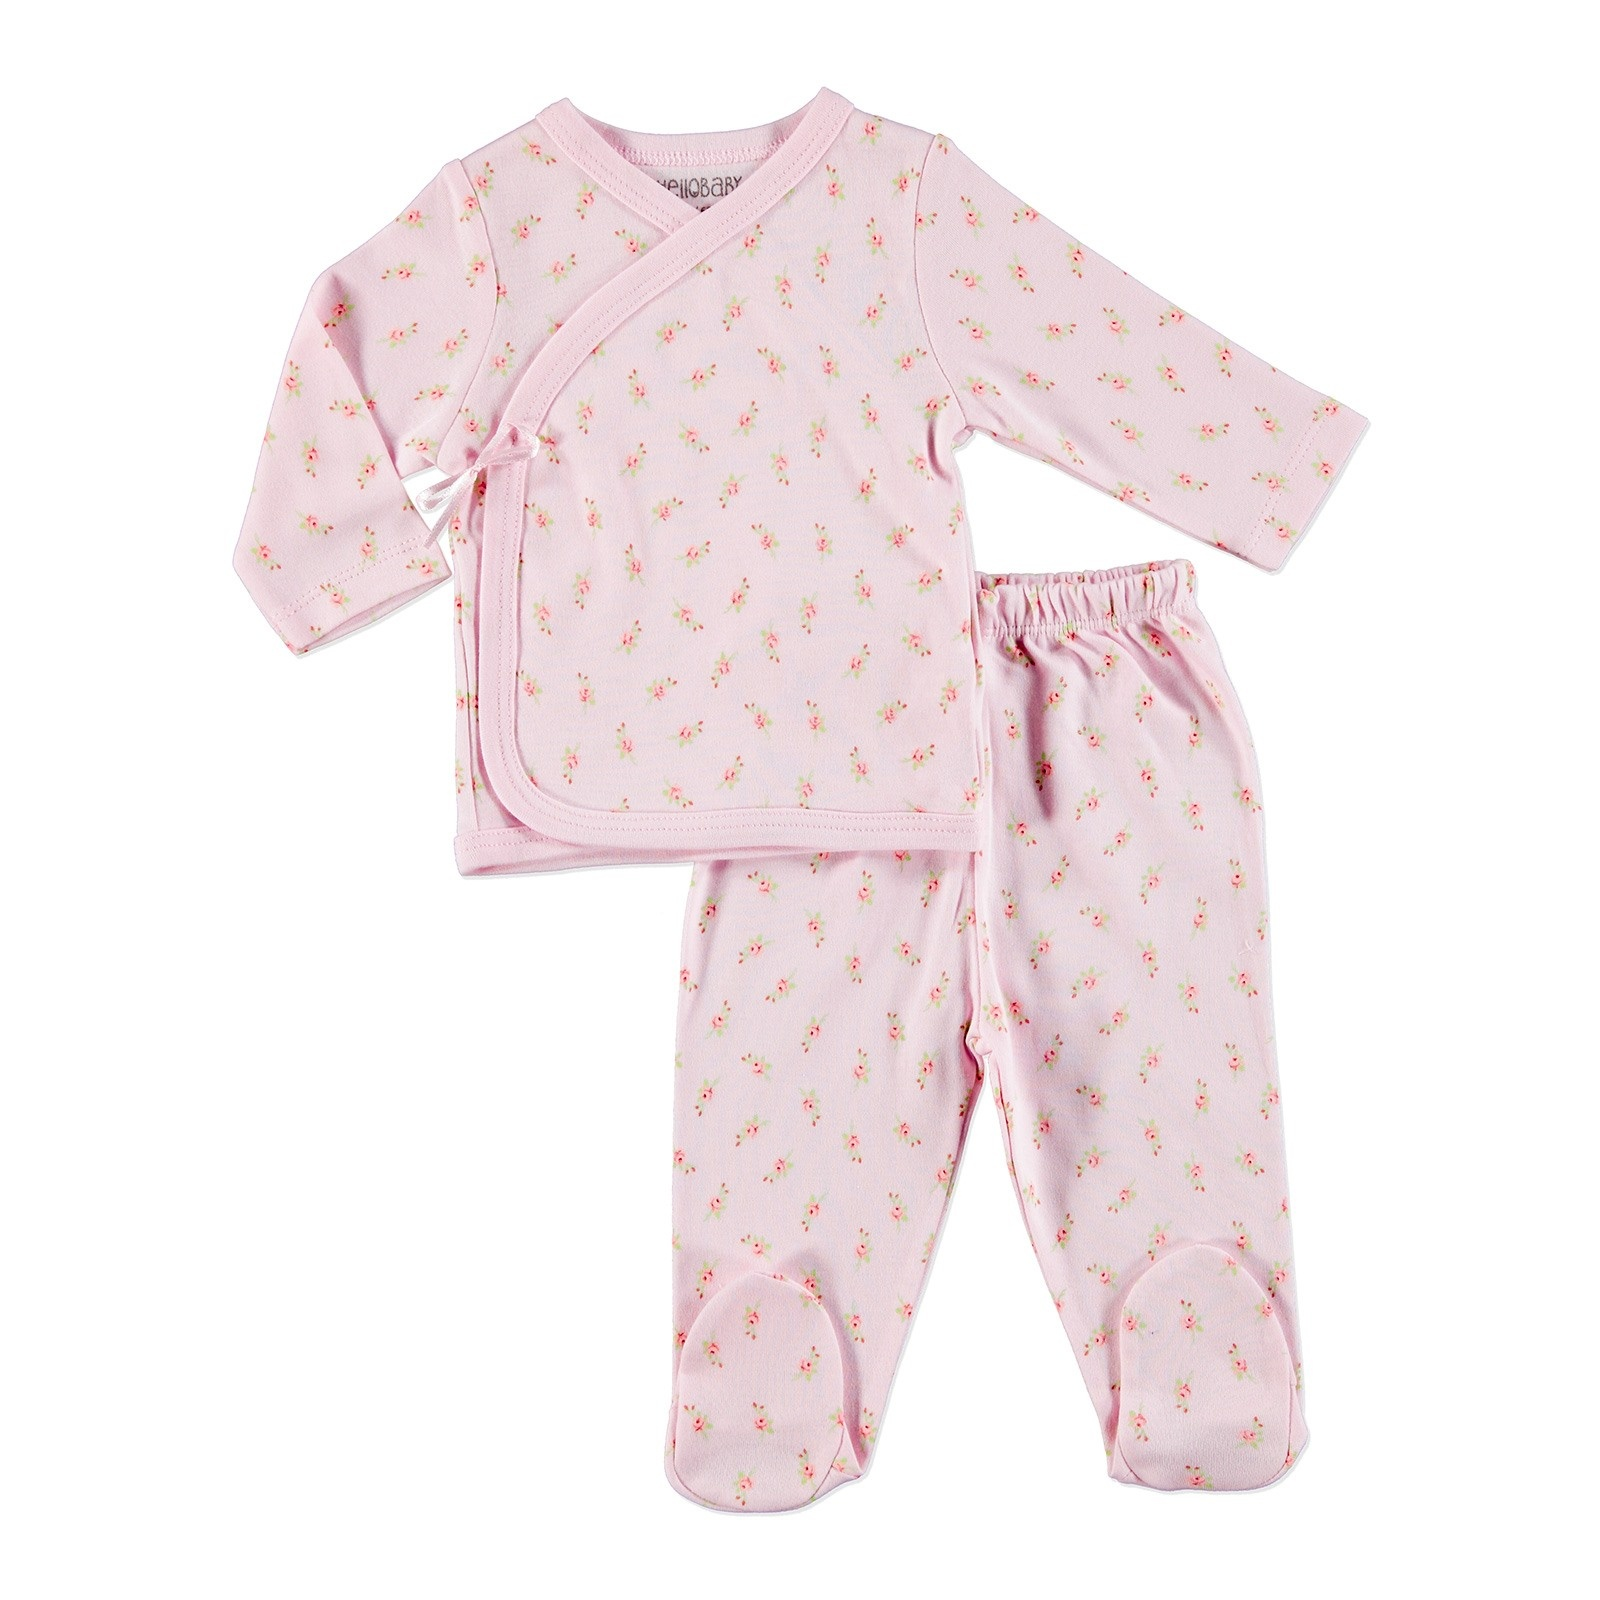 Ebebek HelloBaby Little Flowers Baby Snaps Bodysuits Footed Trousers 2 Pcs Set